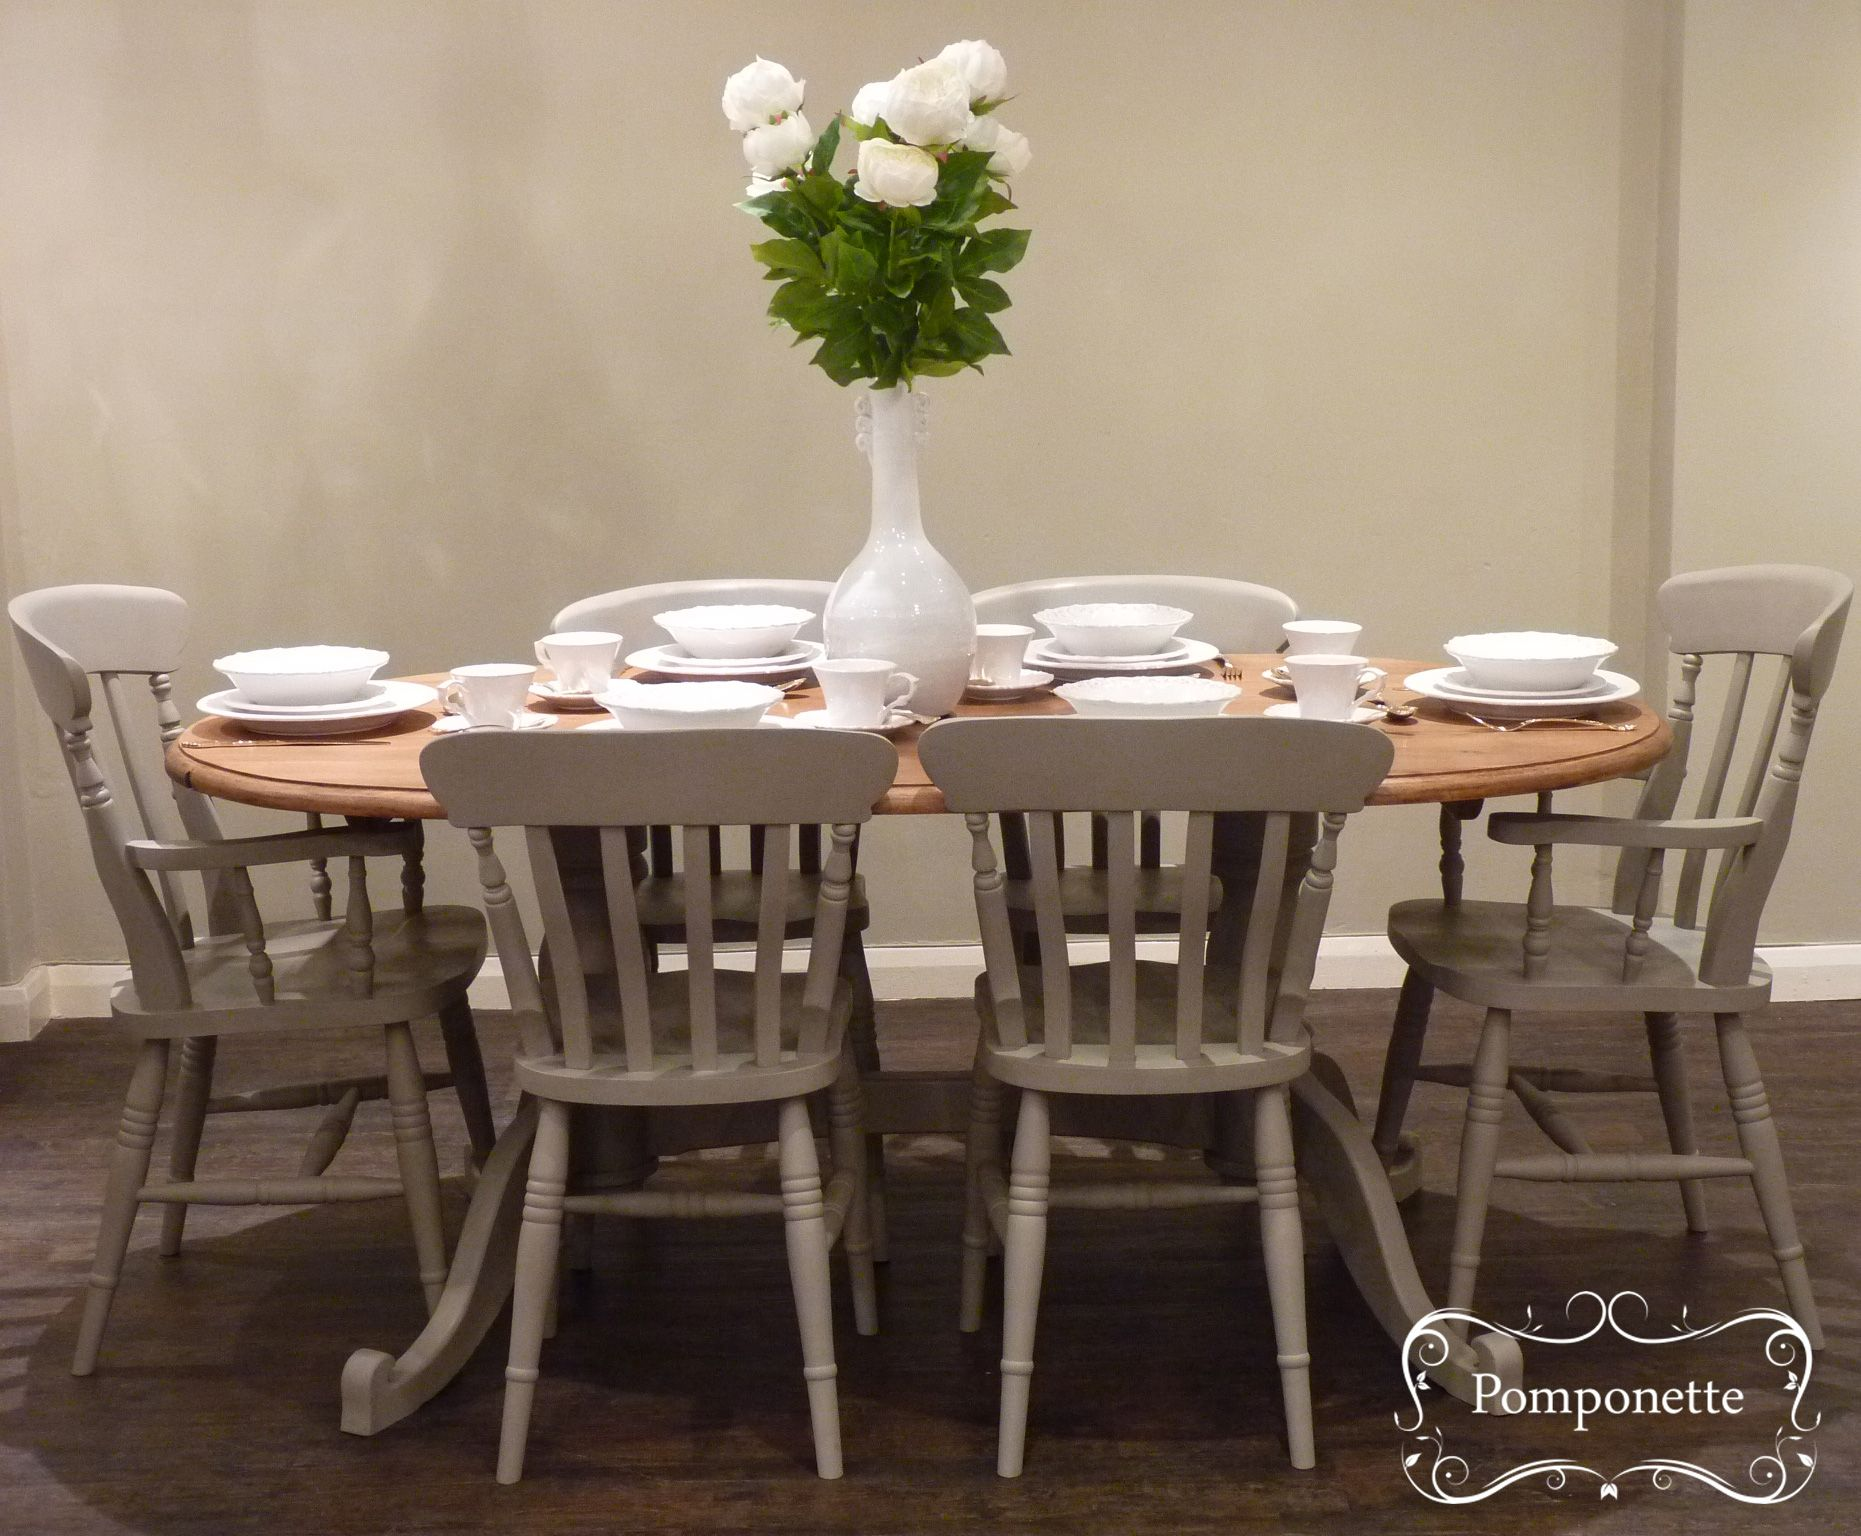 two seat kitchen table Oval Dining Table Six Chairs We have created a mellow mushroom shade by mixing